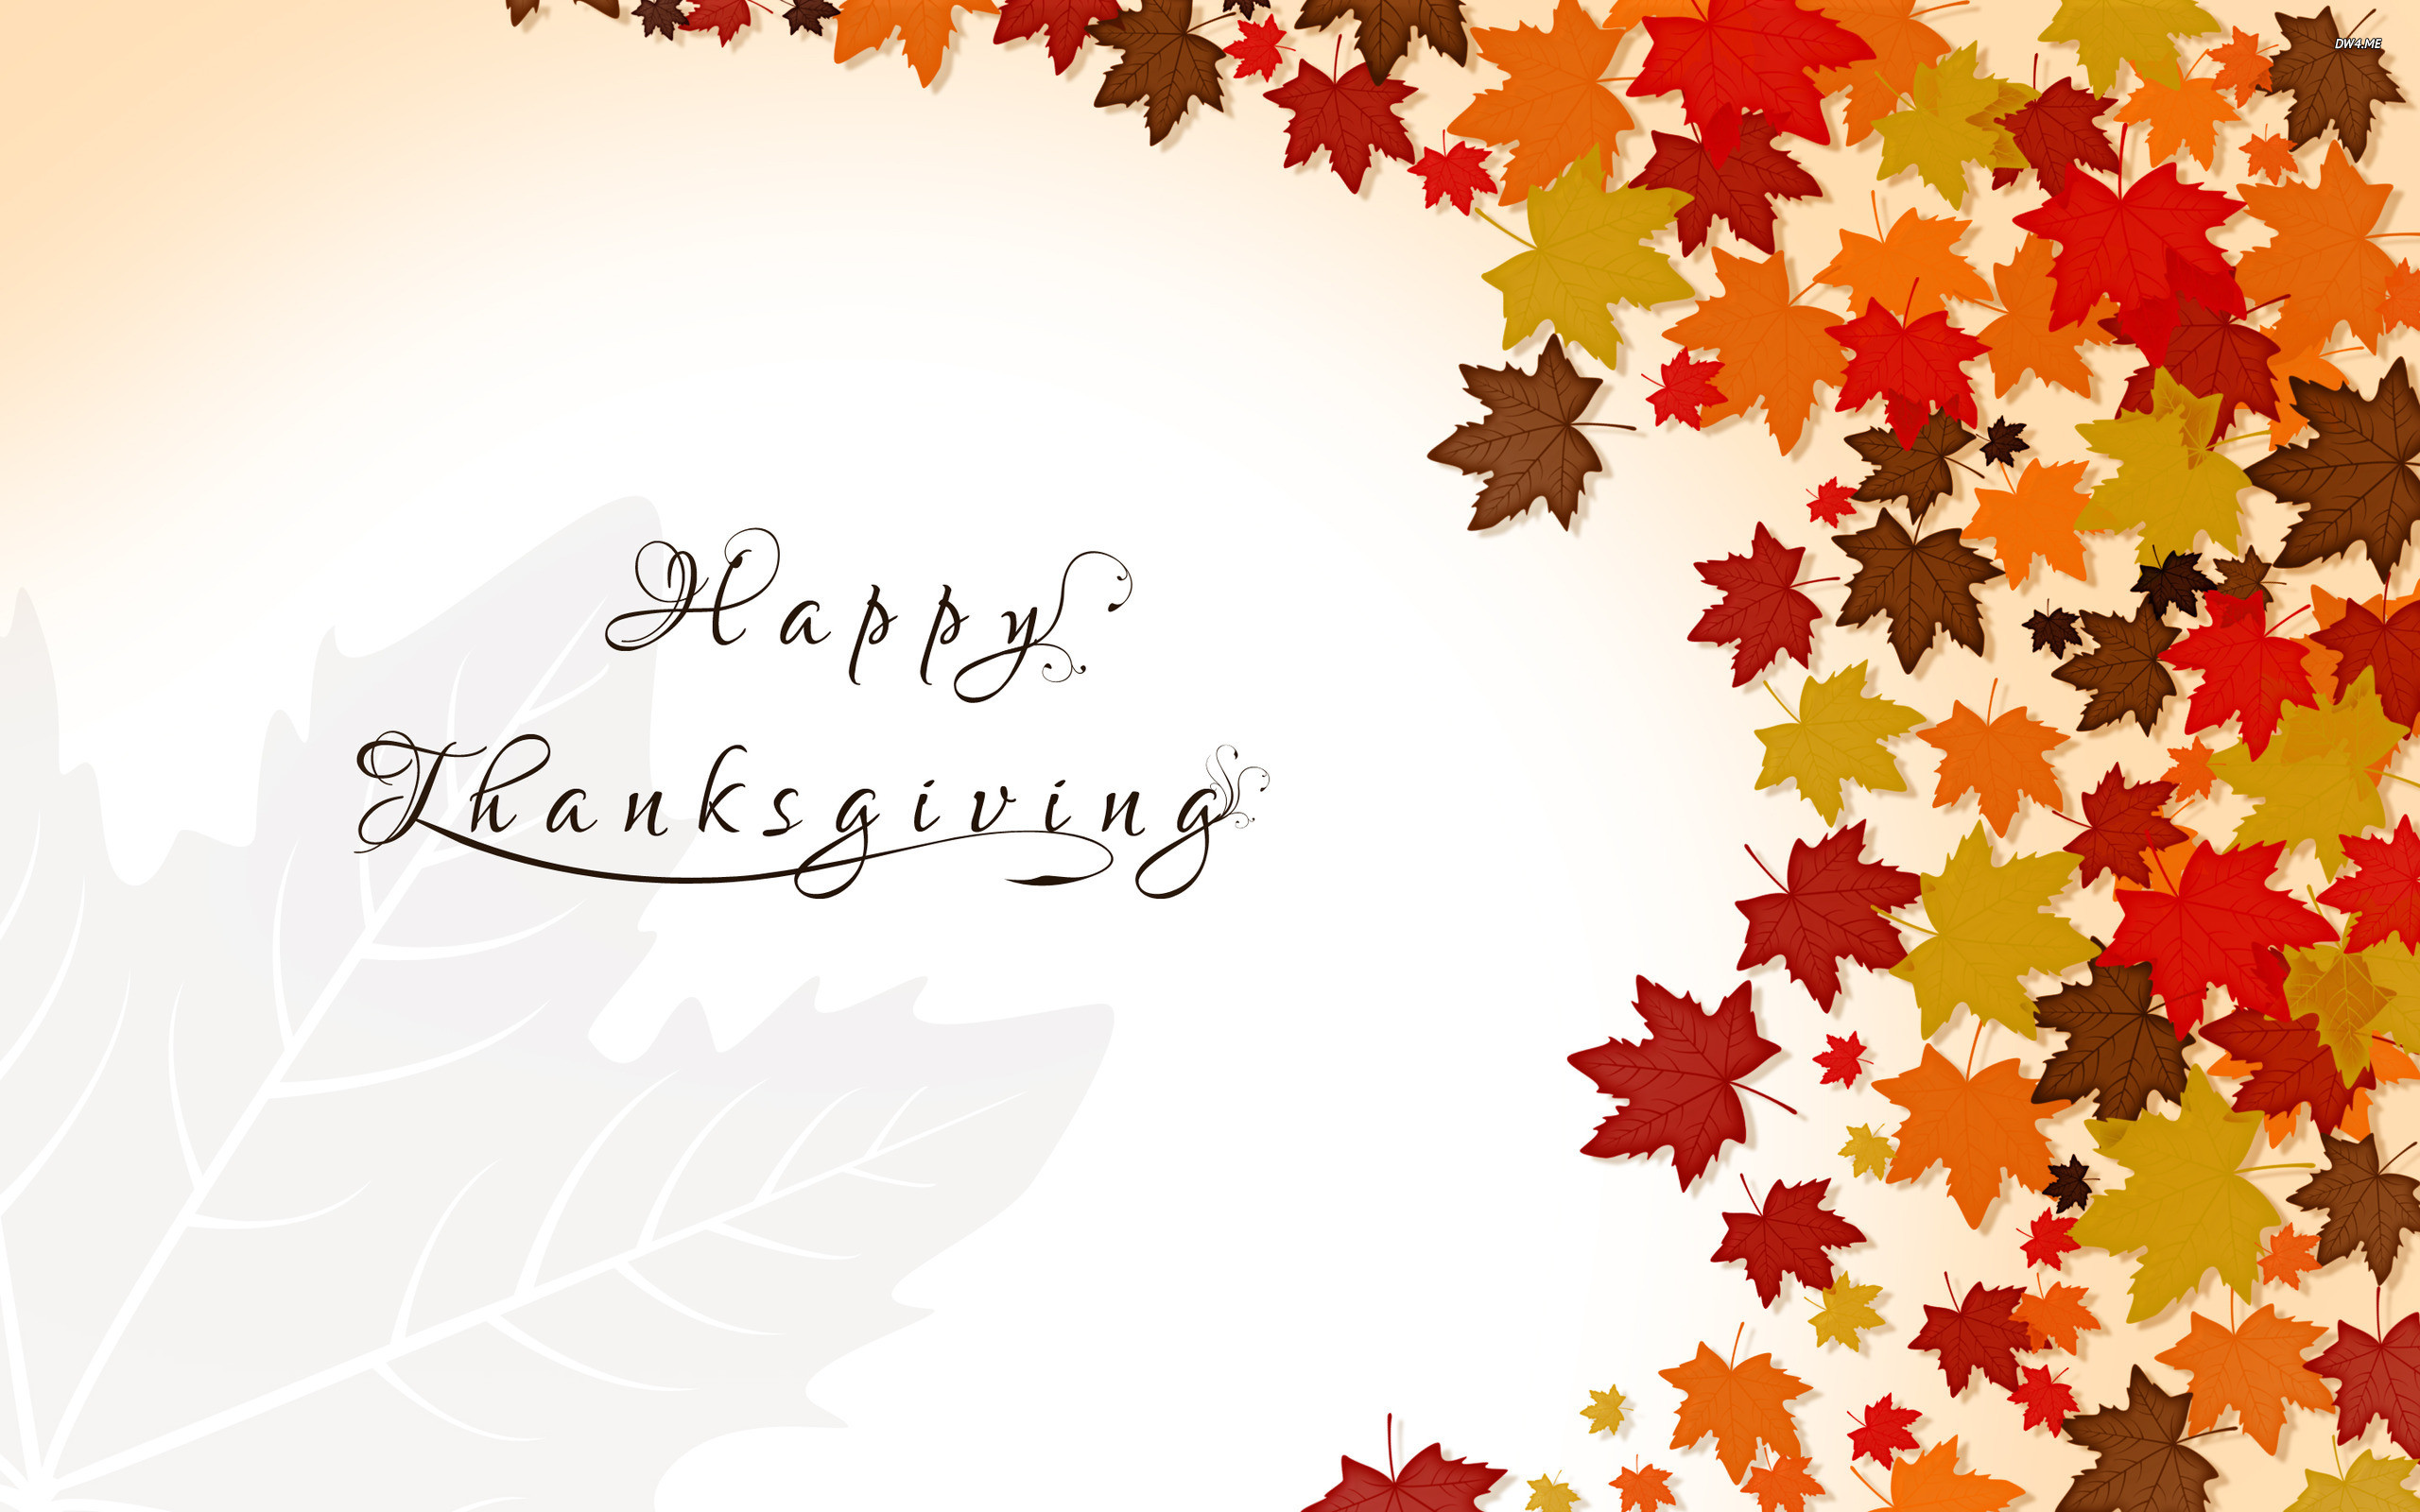 Res: 2560x1600, Thanksgiving Wallpapers.